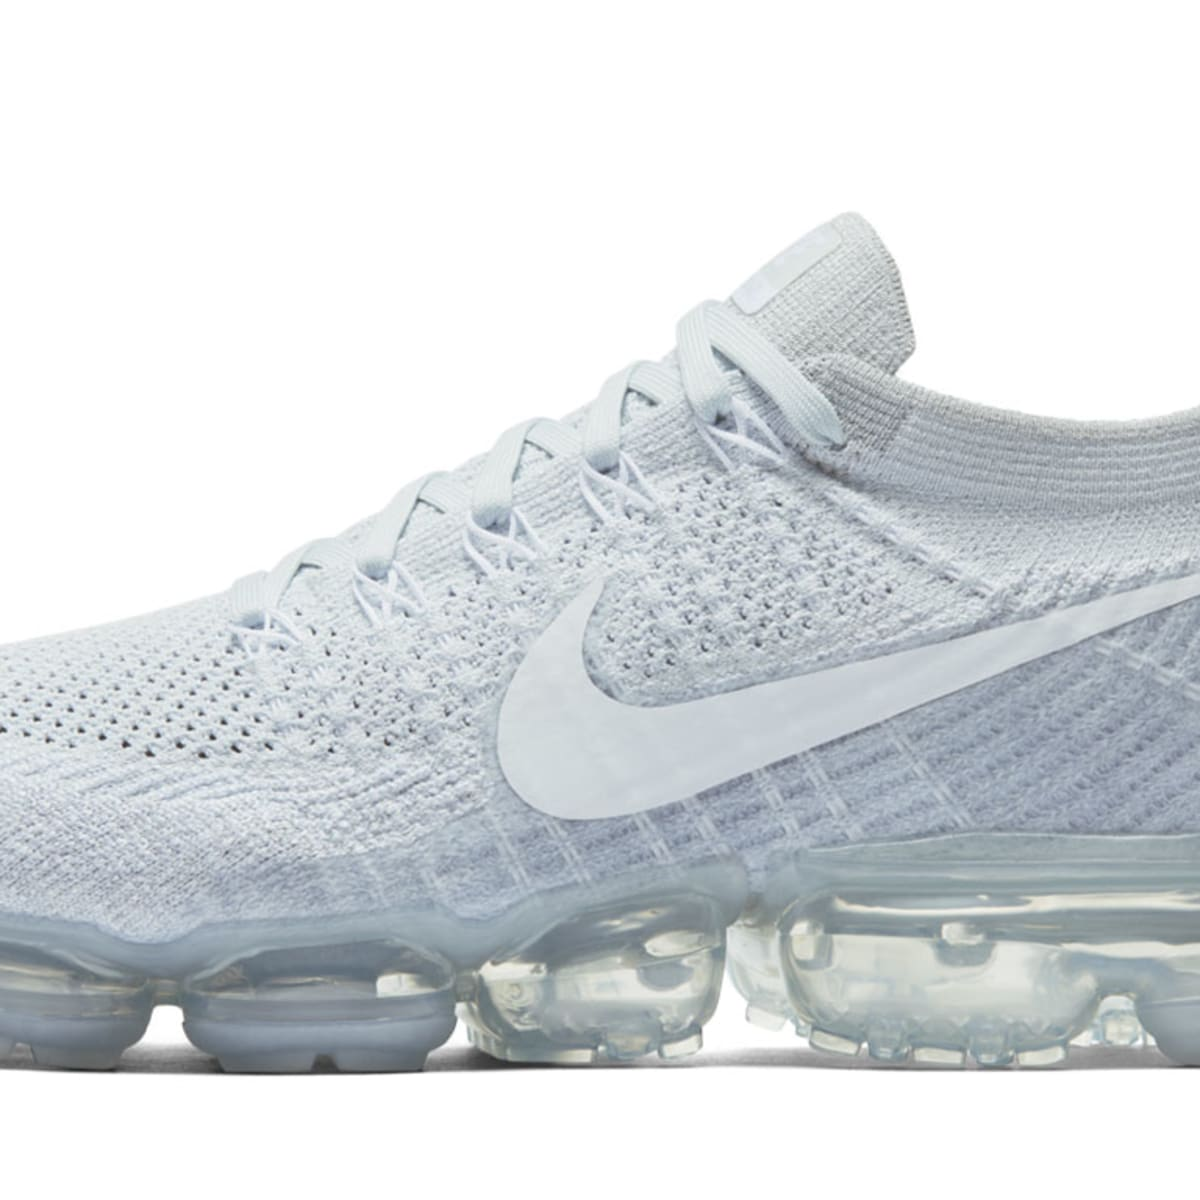 Nike Air VaporMax flyknit review 2017, release date - Sports ...